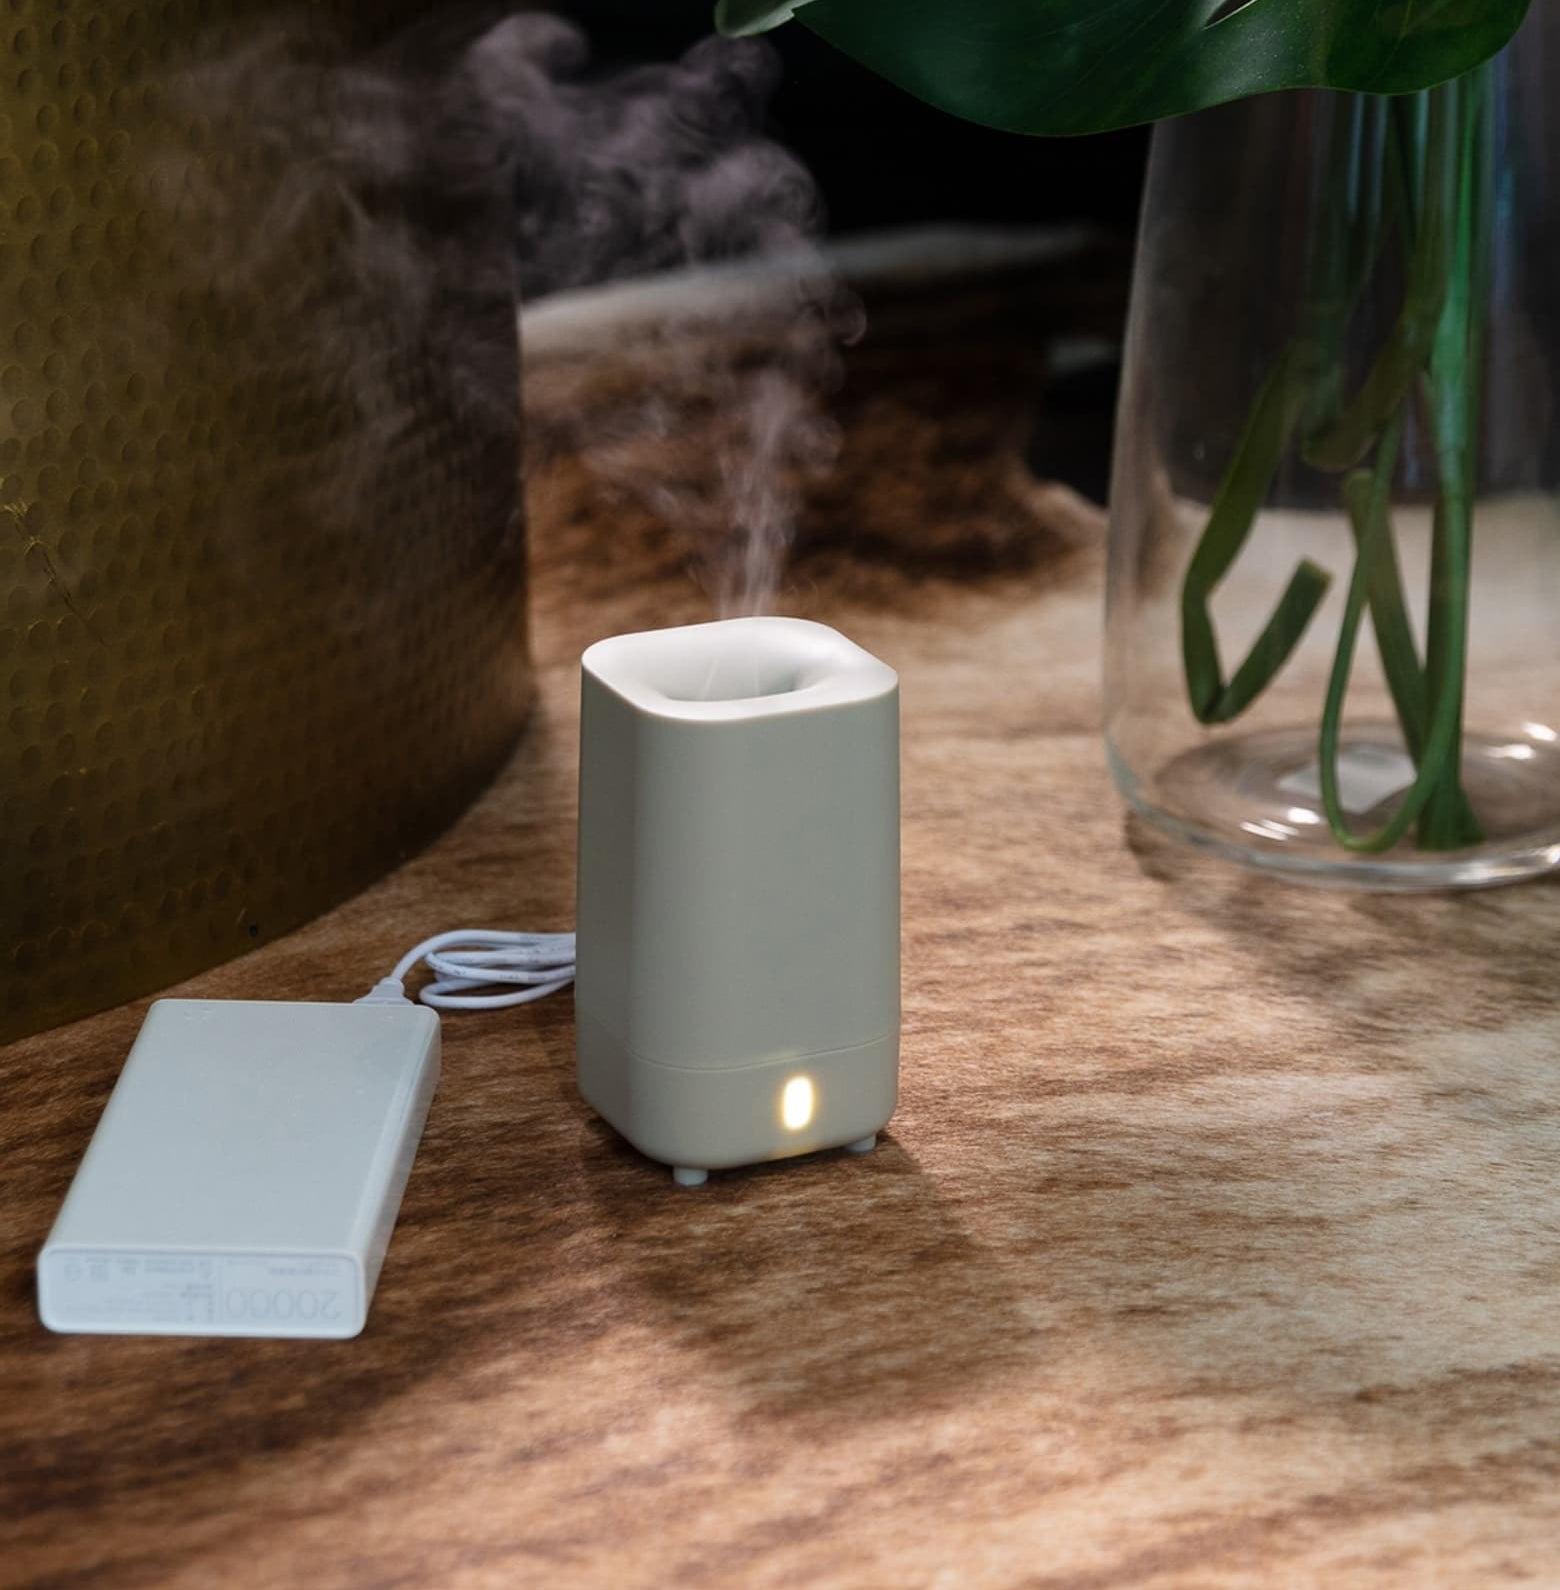 The small diffuser sitting on a table with mist coming out of the top and a battery pack sitting next to it